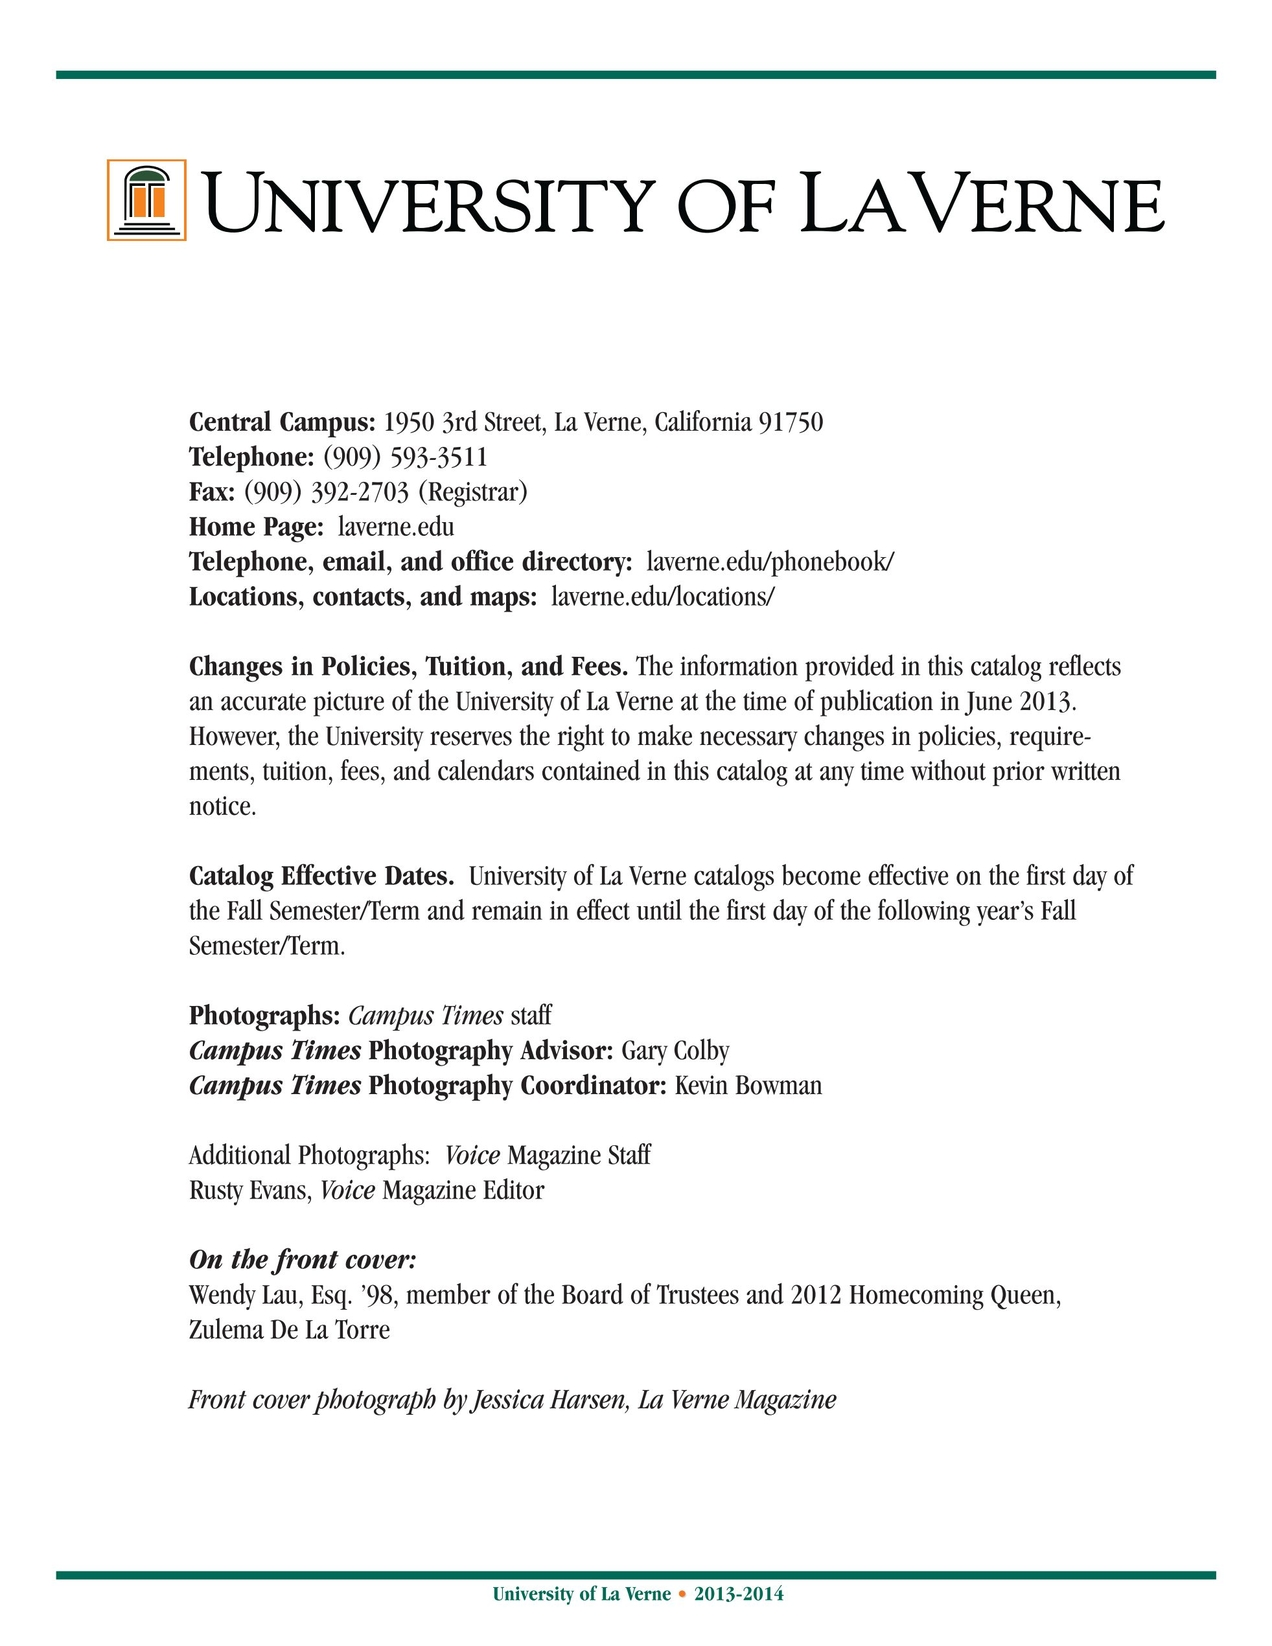 University Of La Verne 2013 2014 Catalog